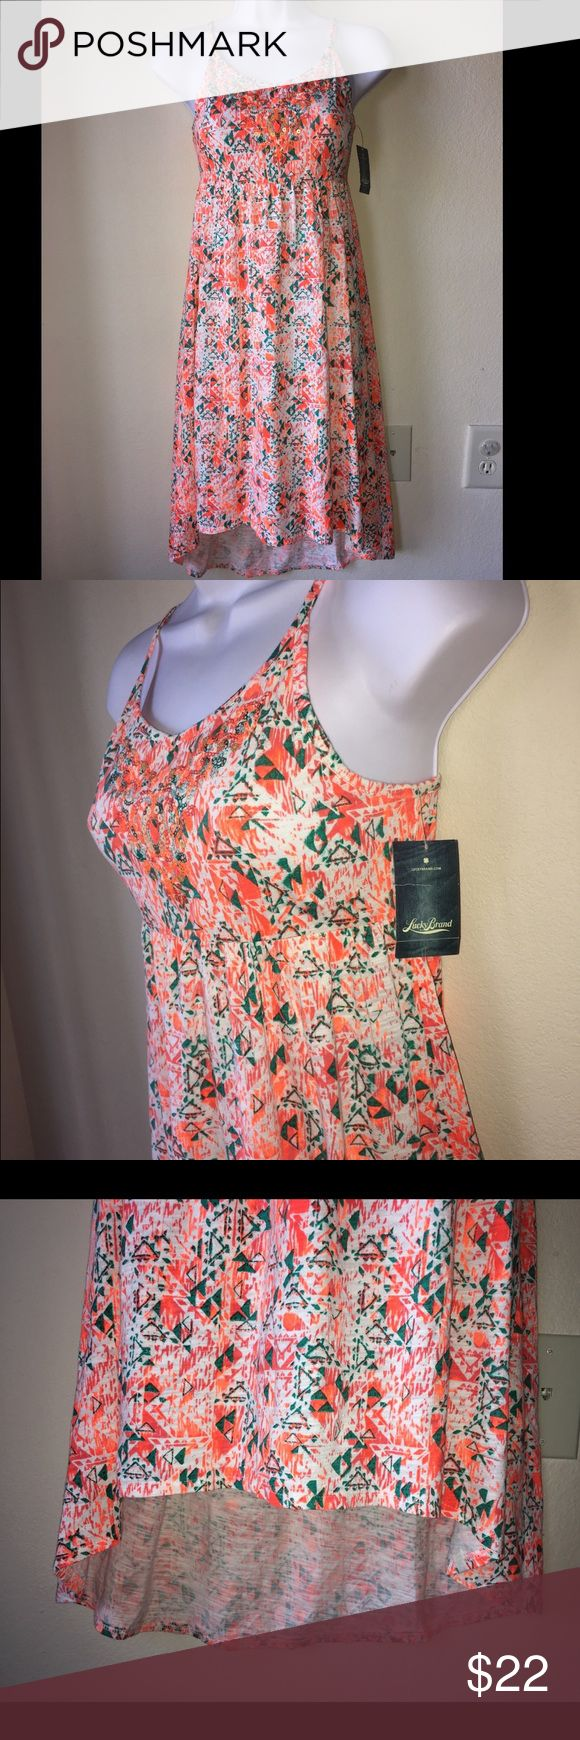 """LUCKY BRAND GIRL'S Maxi Sun DRESS HIGH/LO L (12) LUCKY BRAND GIRL'S SUN DRESS HIGH/LO Size L (12) Brand New With Tags. No defects. As is on pictures.  Pet and smoke free home.  Length front 29"""" back 35"""" Lucky Brand Dresses Casual"""